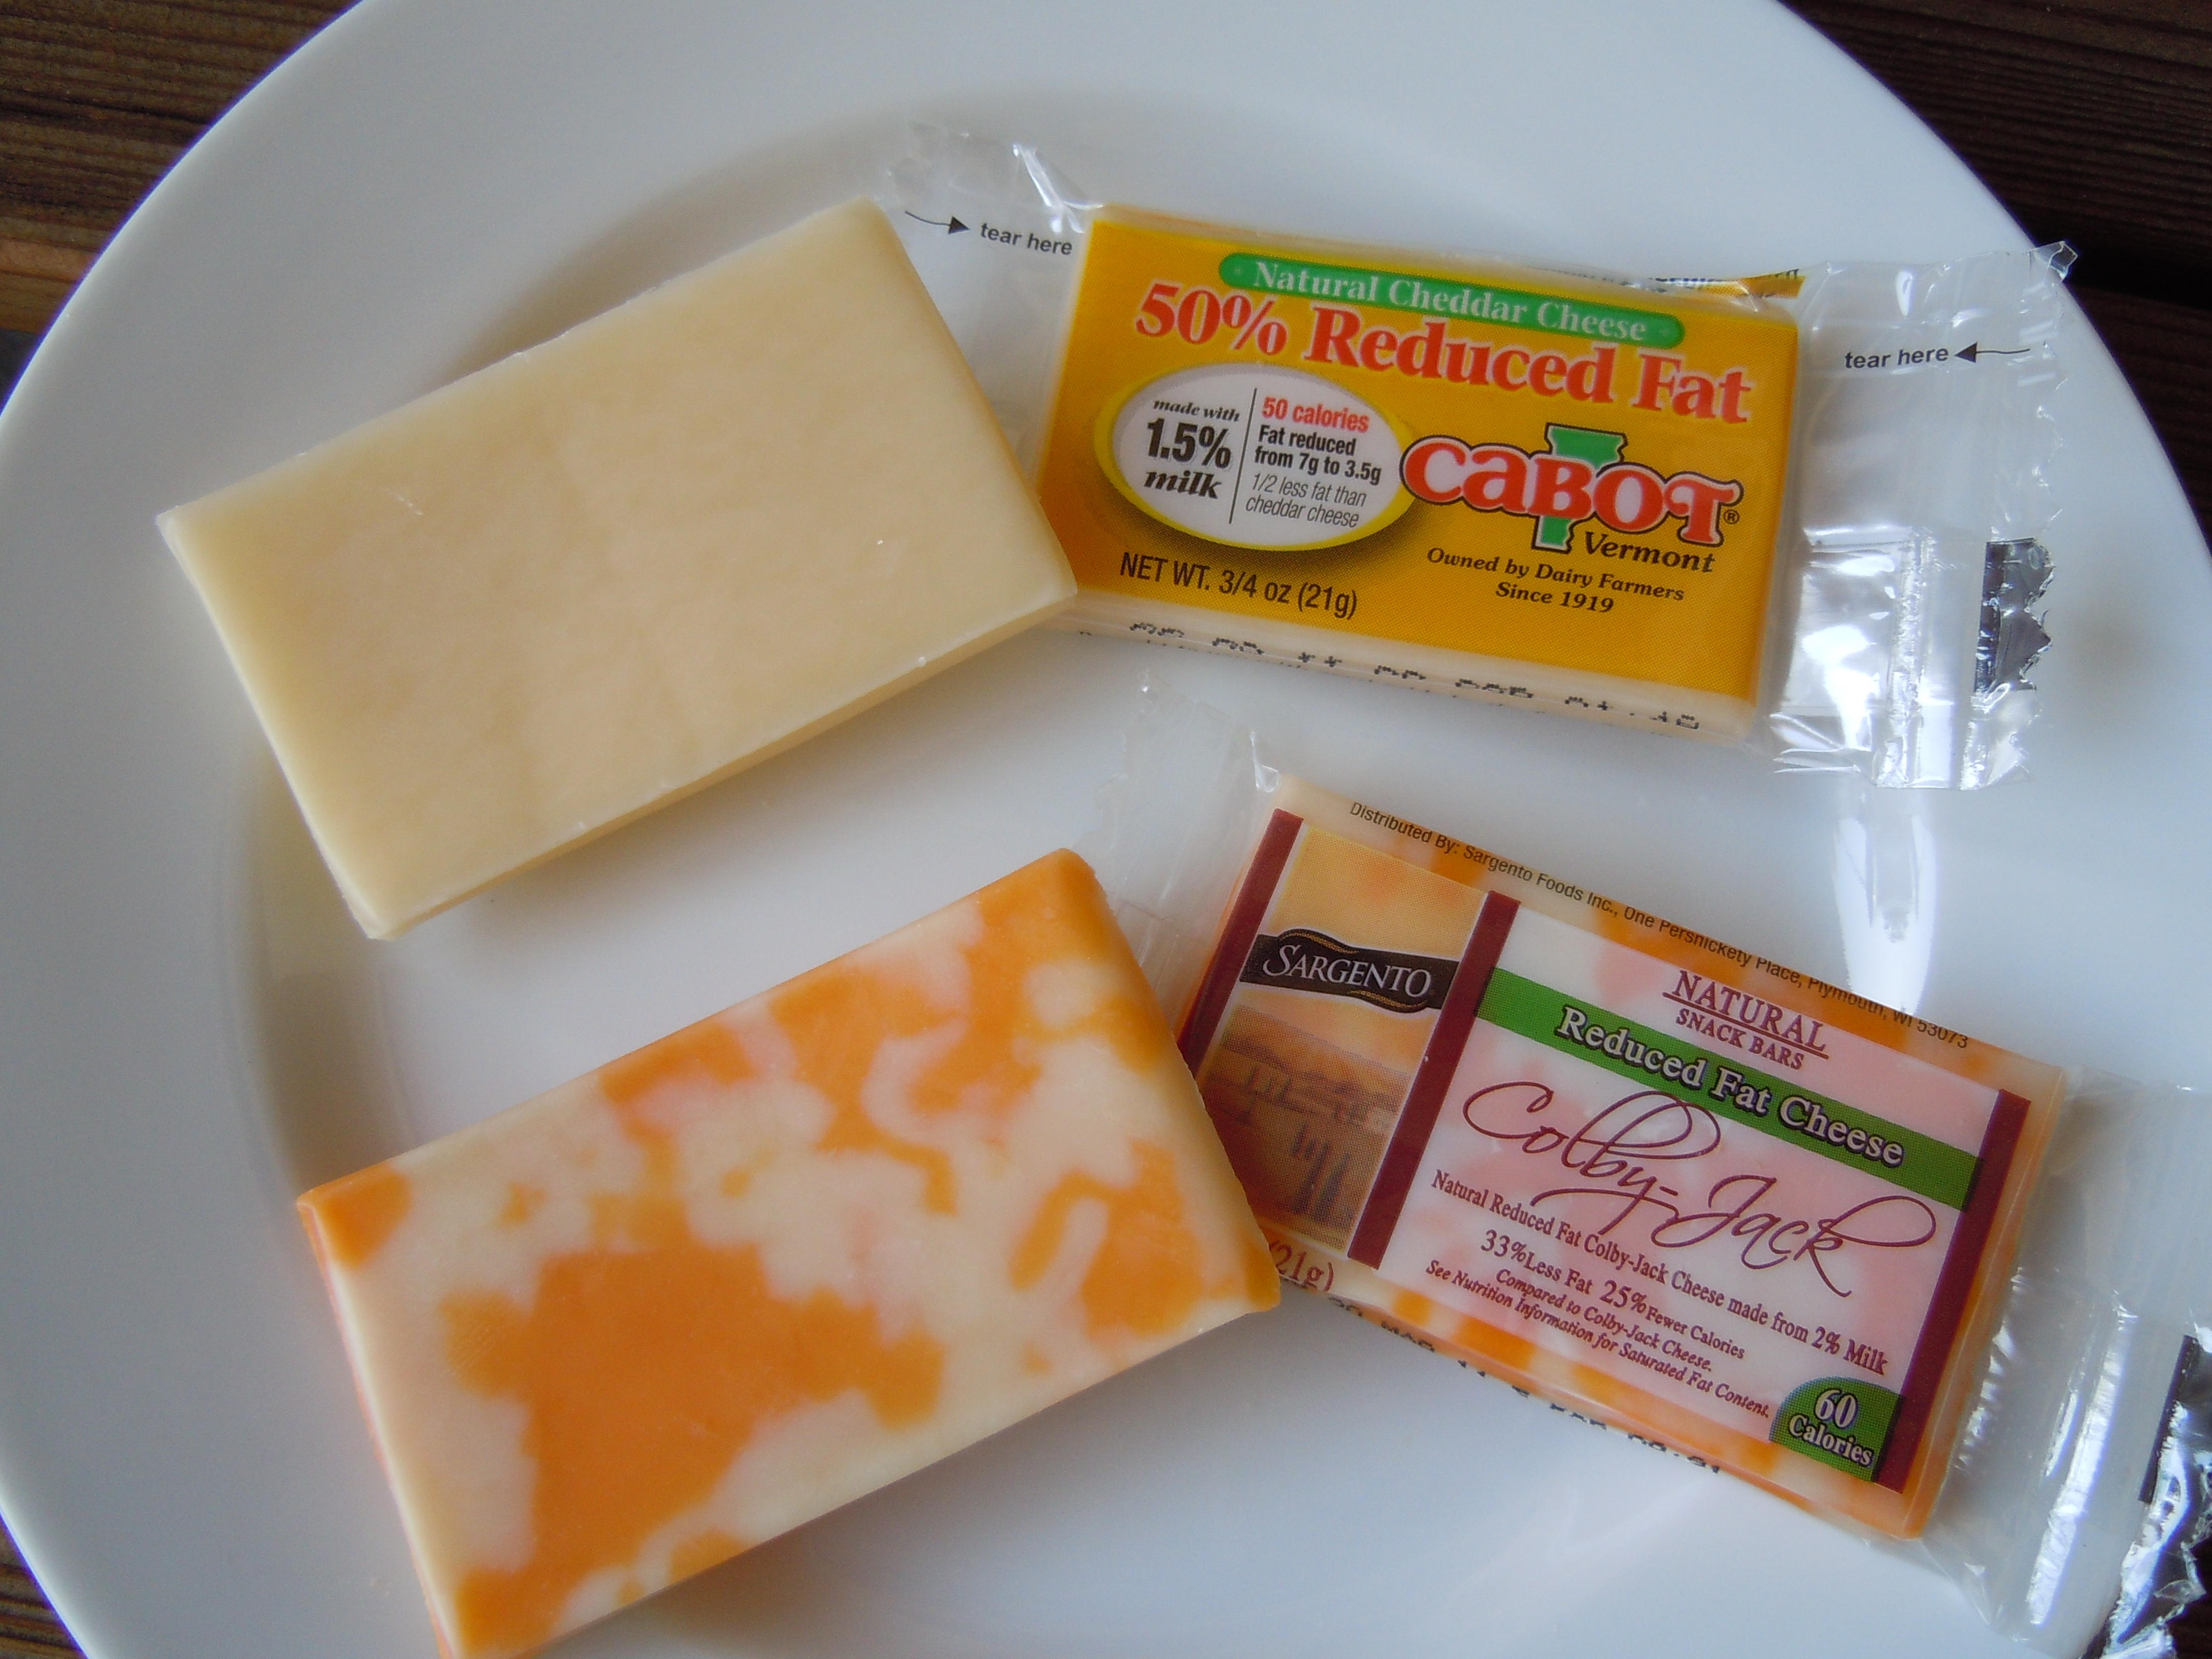 The Best Reduced Fat Cheese And Crackers My Pick Cabot